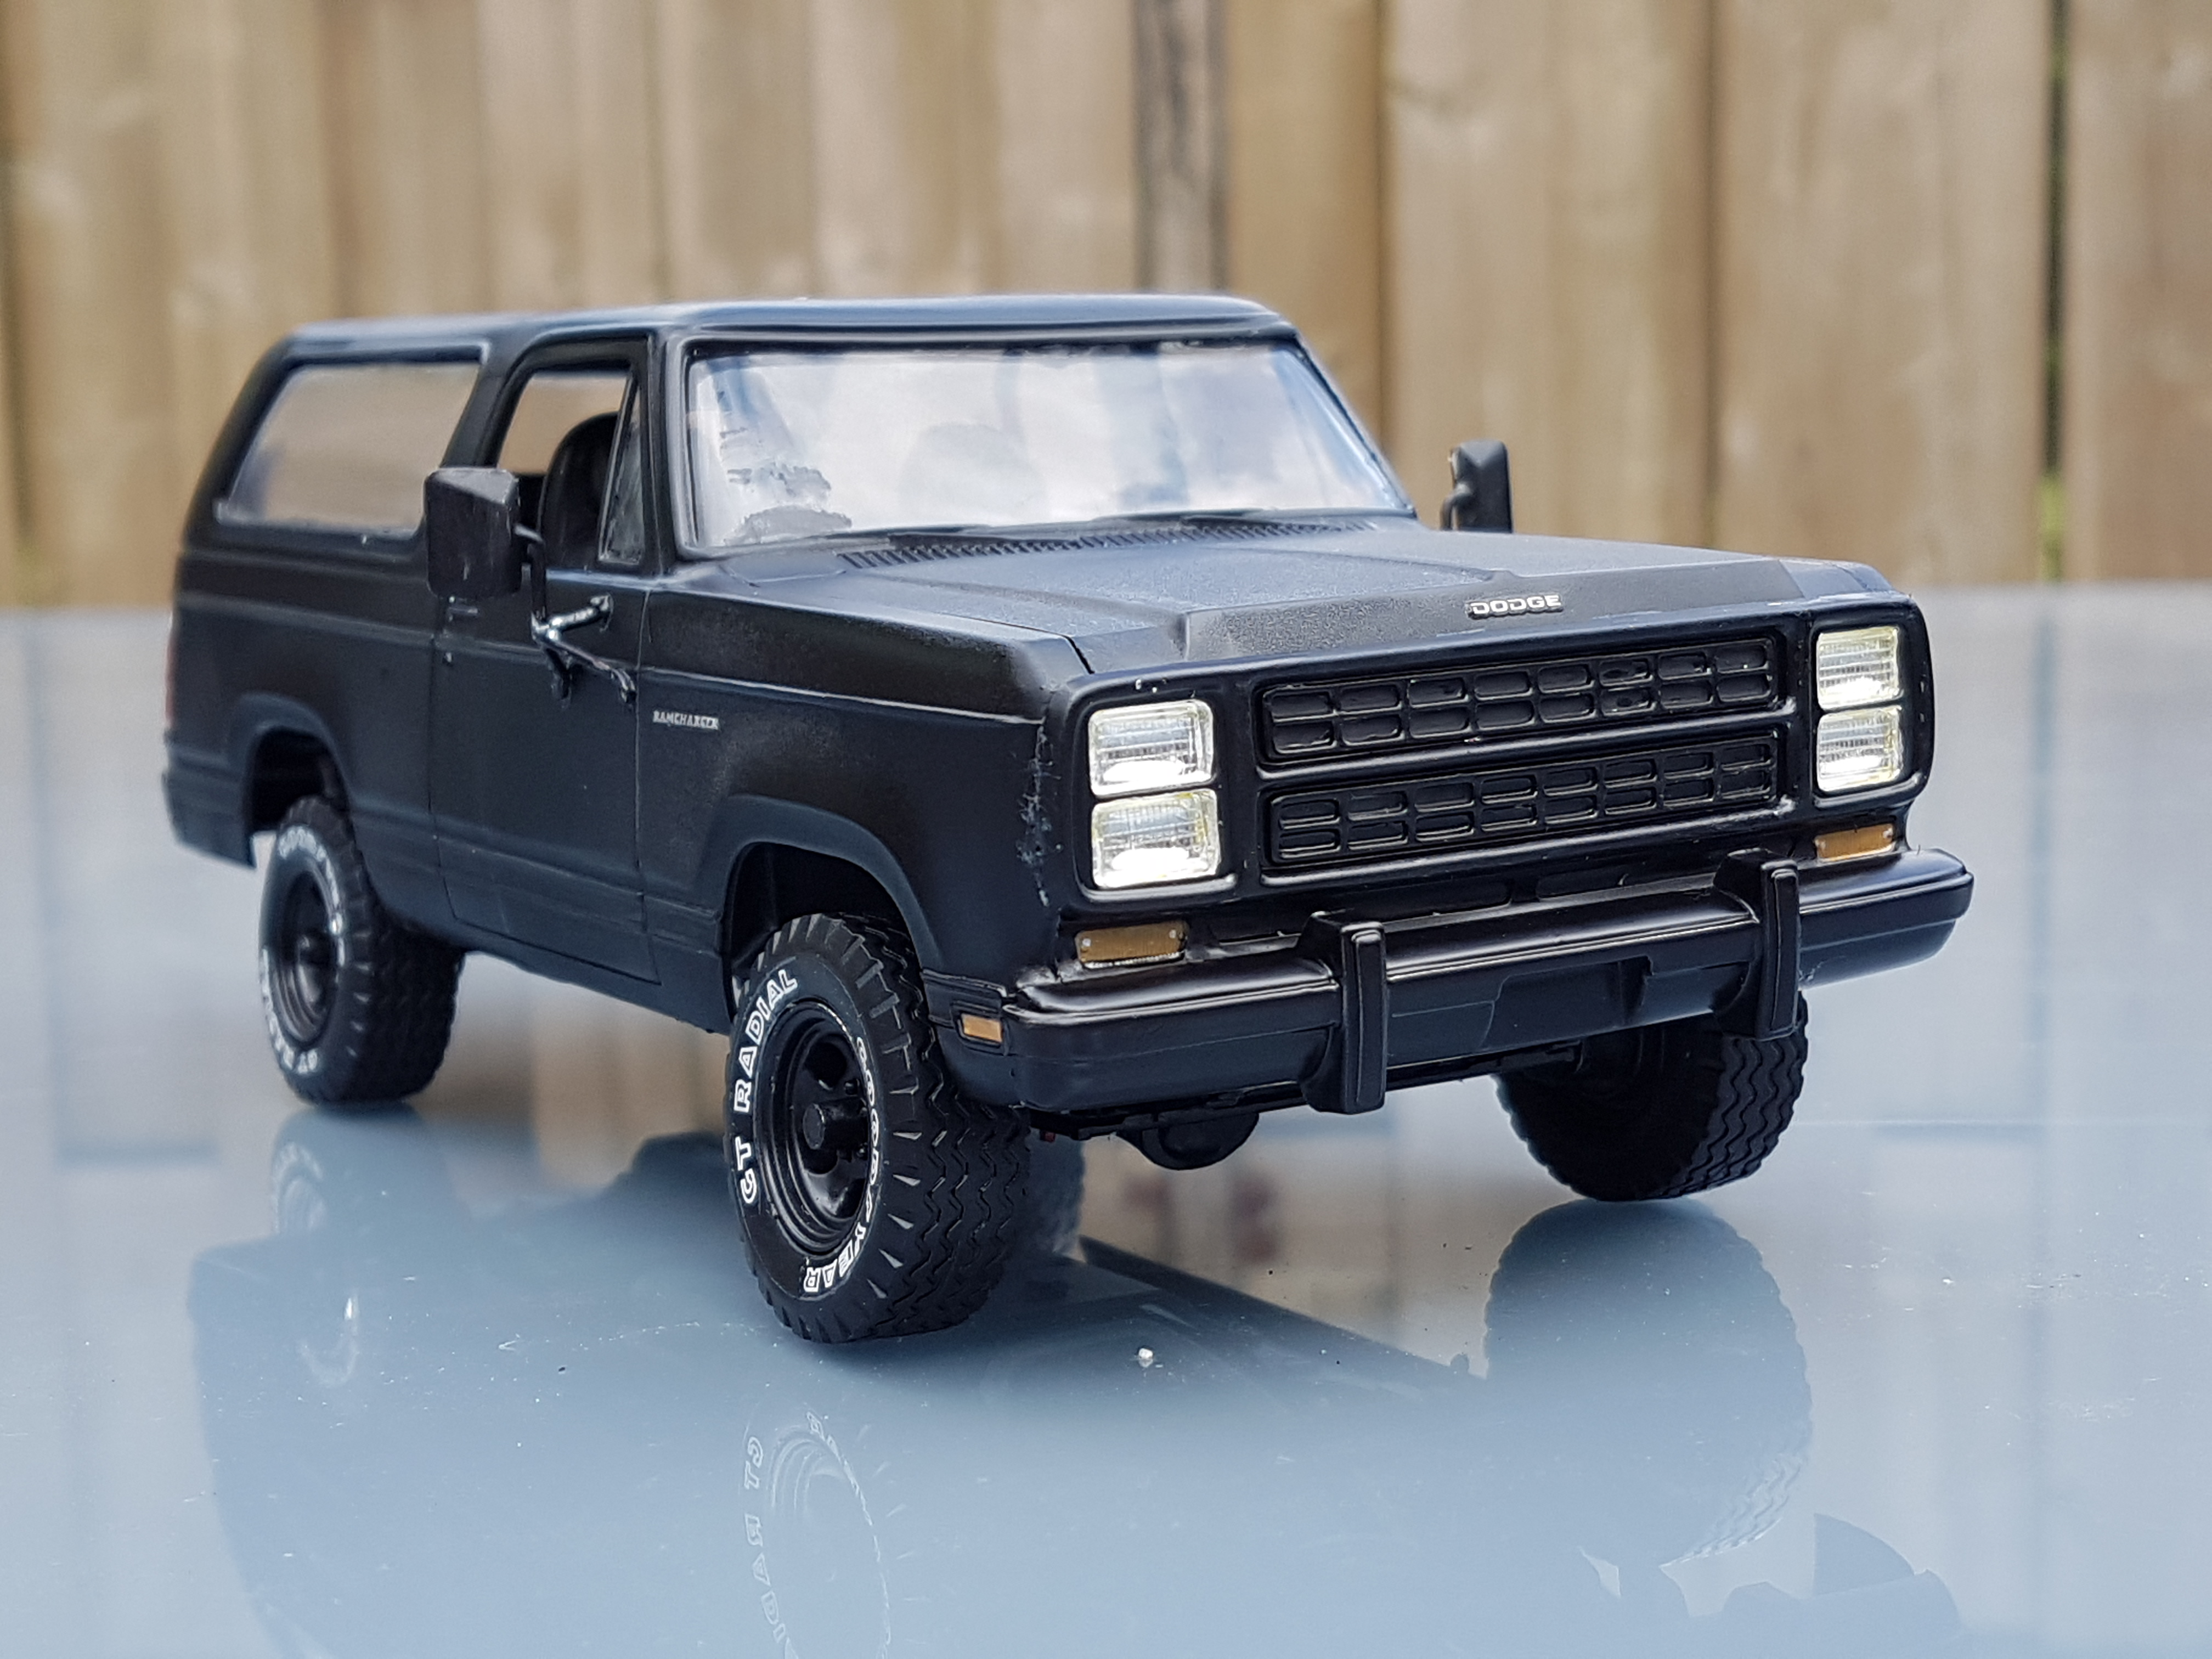 1980 Dodge Ramcharger Revell Rays Kits Ford Bronco Blue